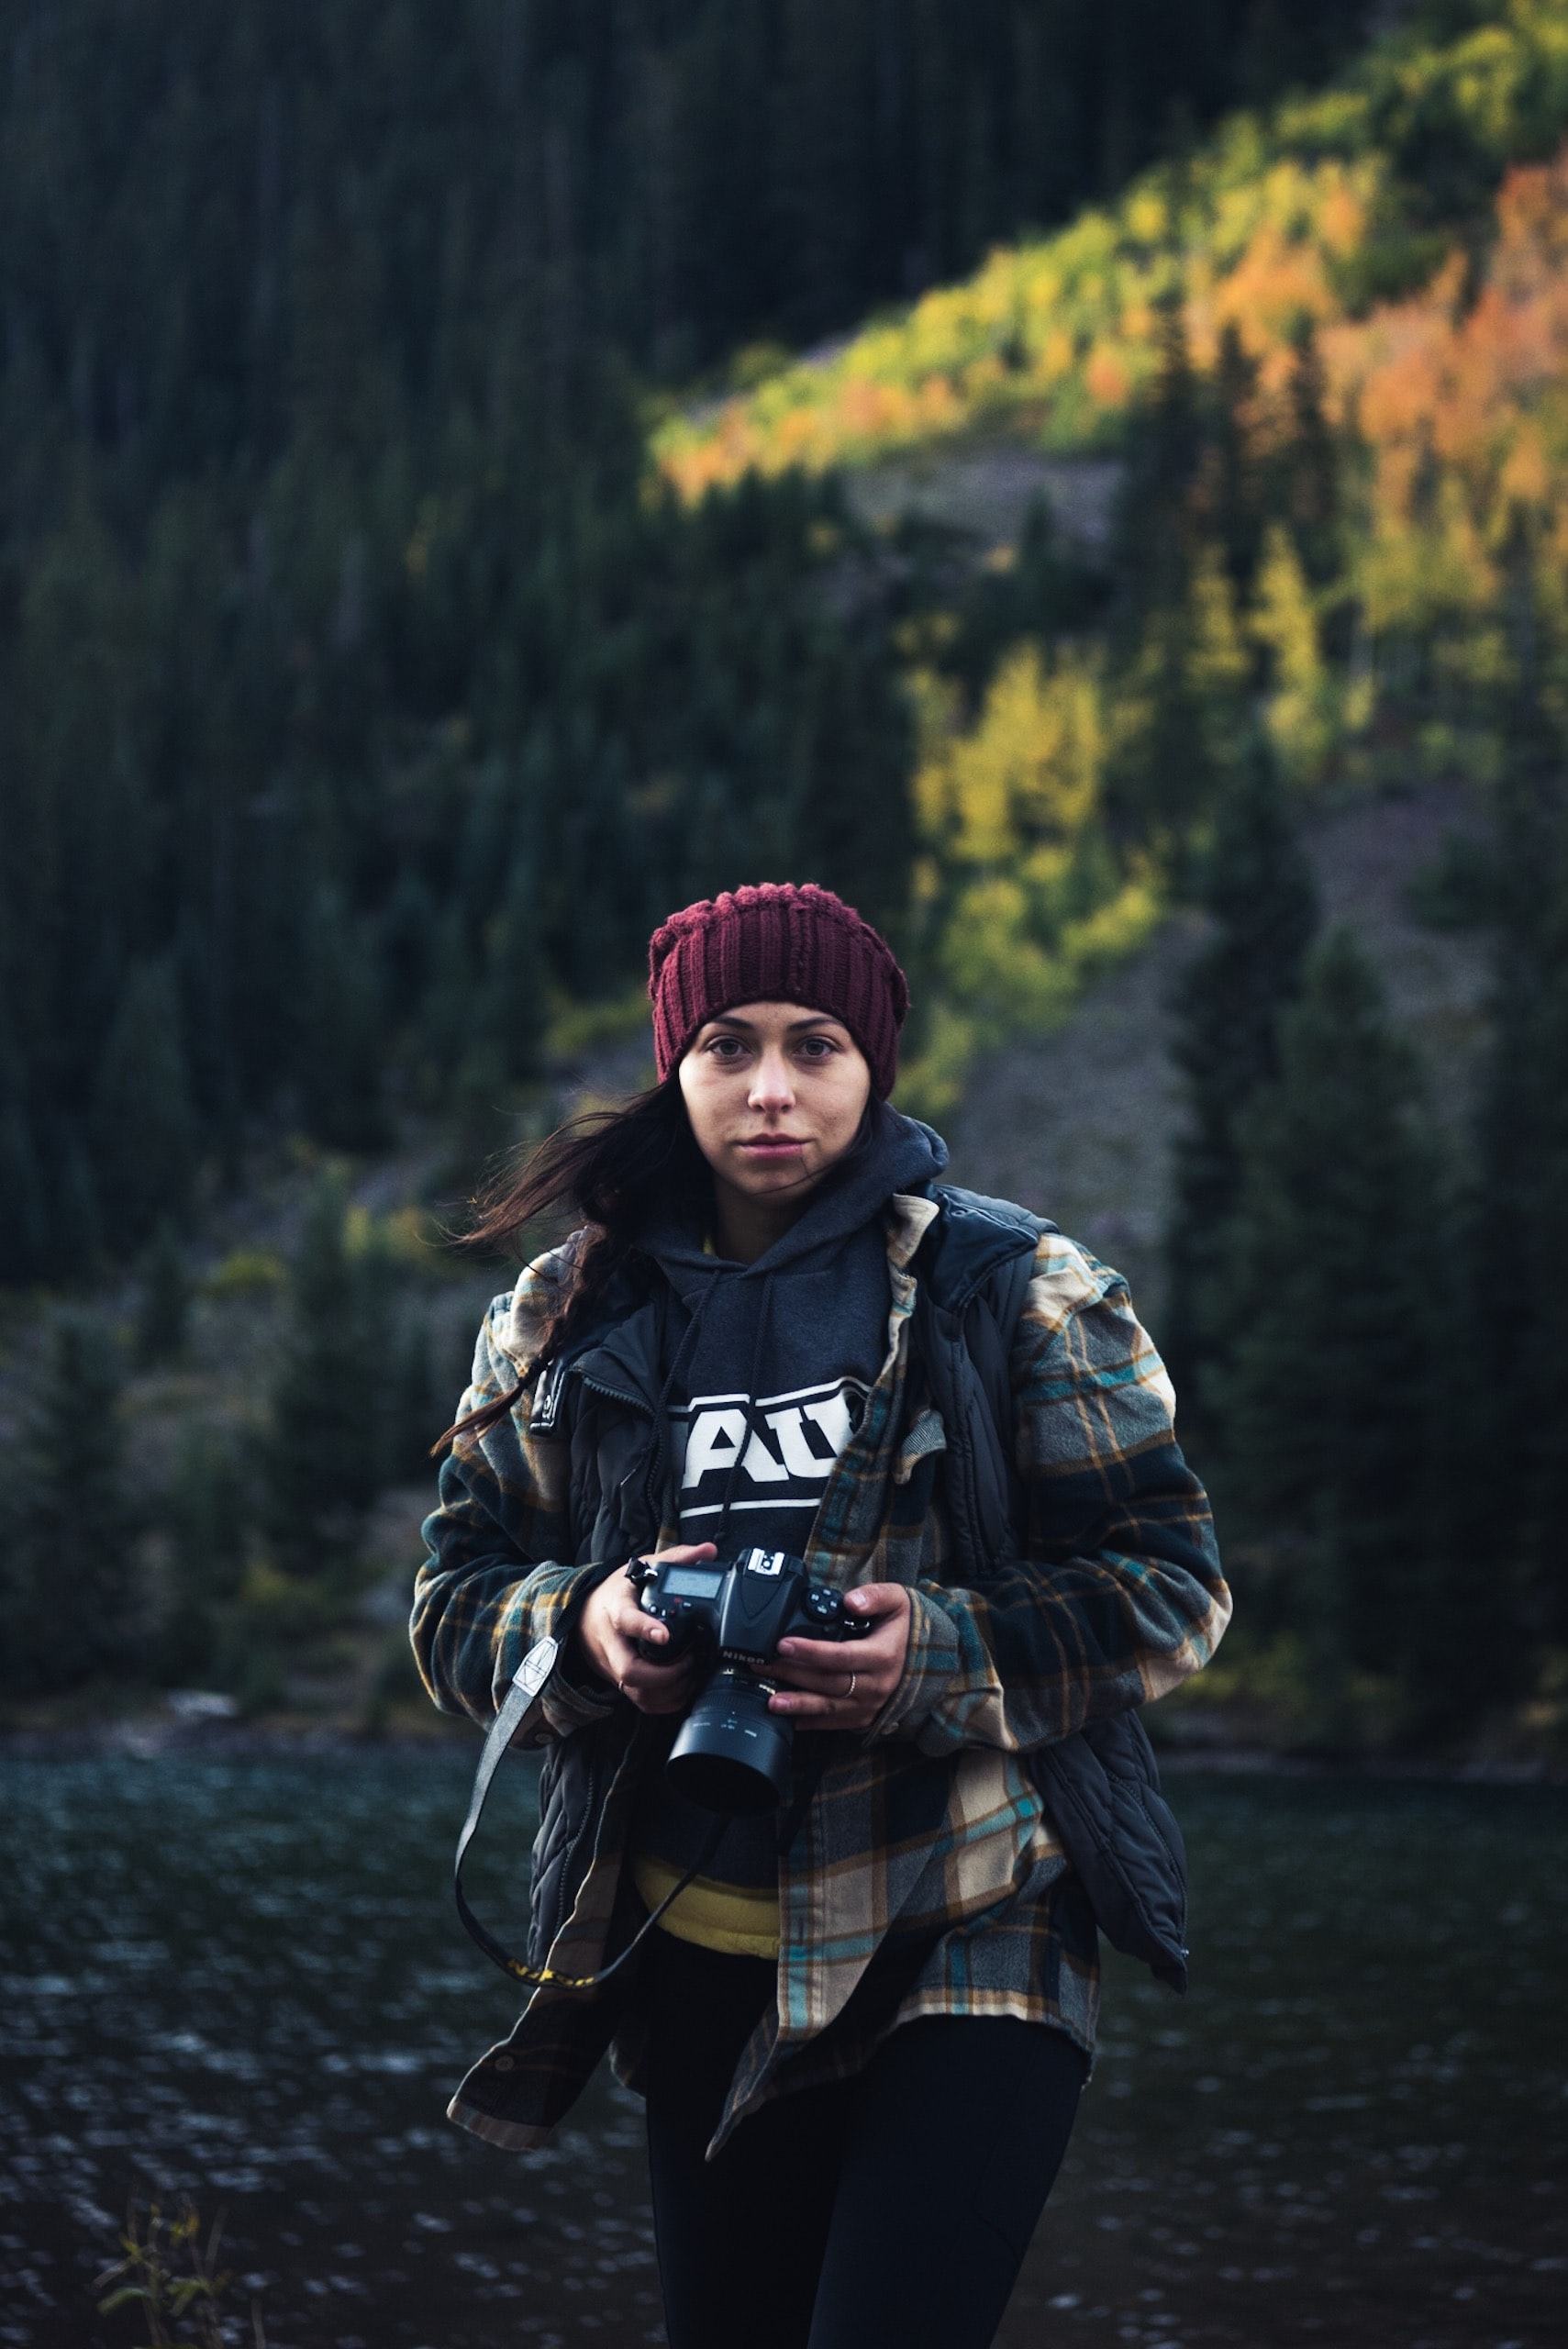 women wearing jacket and red knit cap holding DSLR camera walking near trees